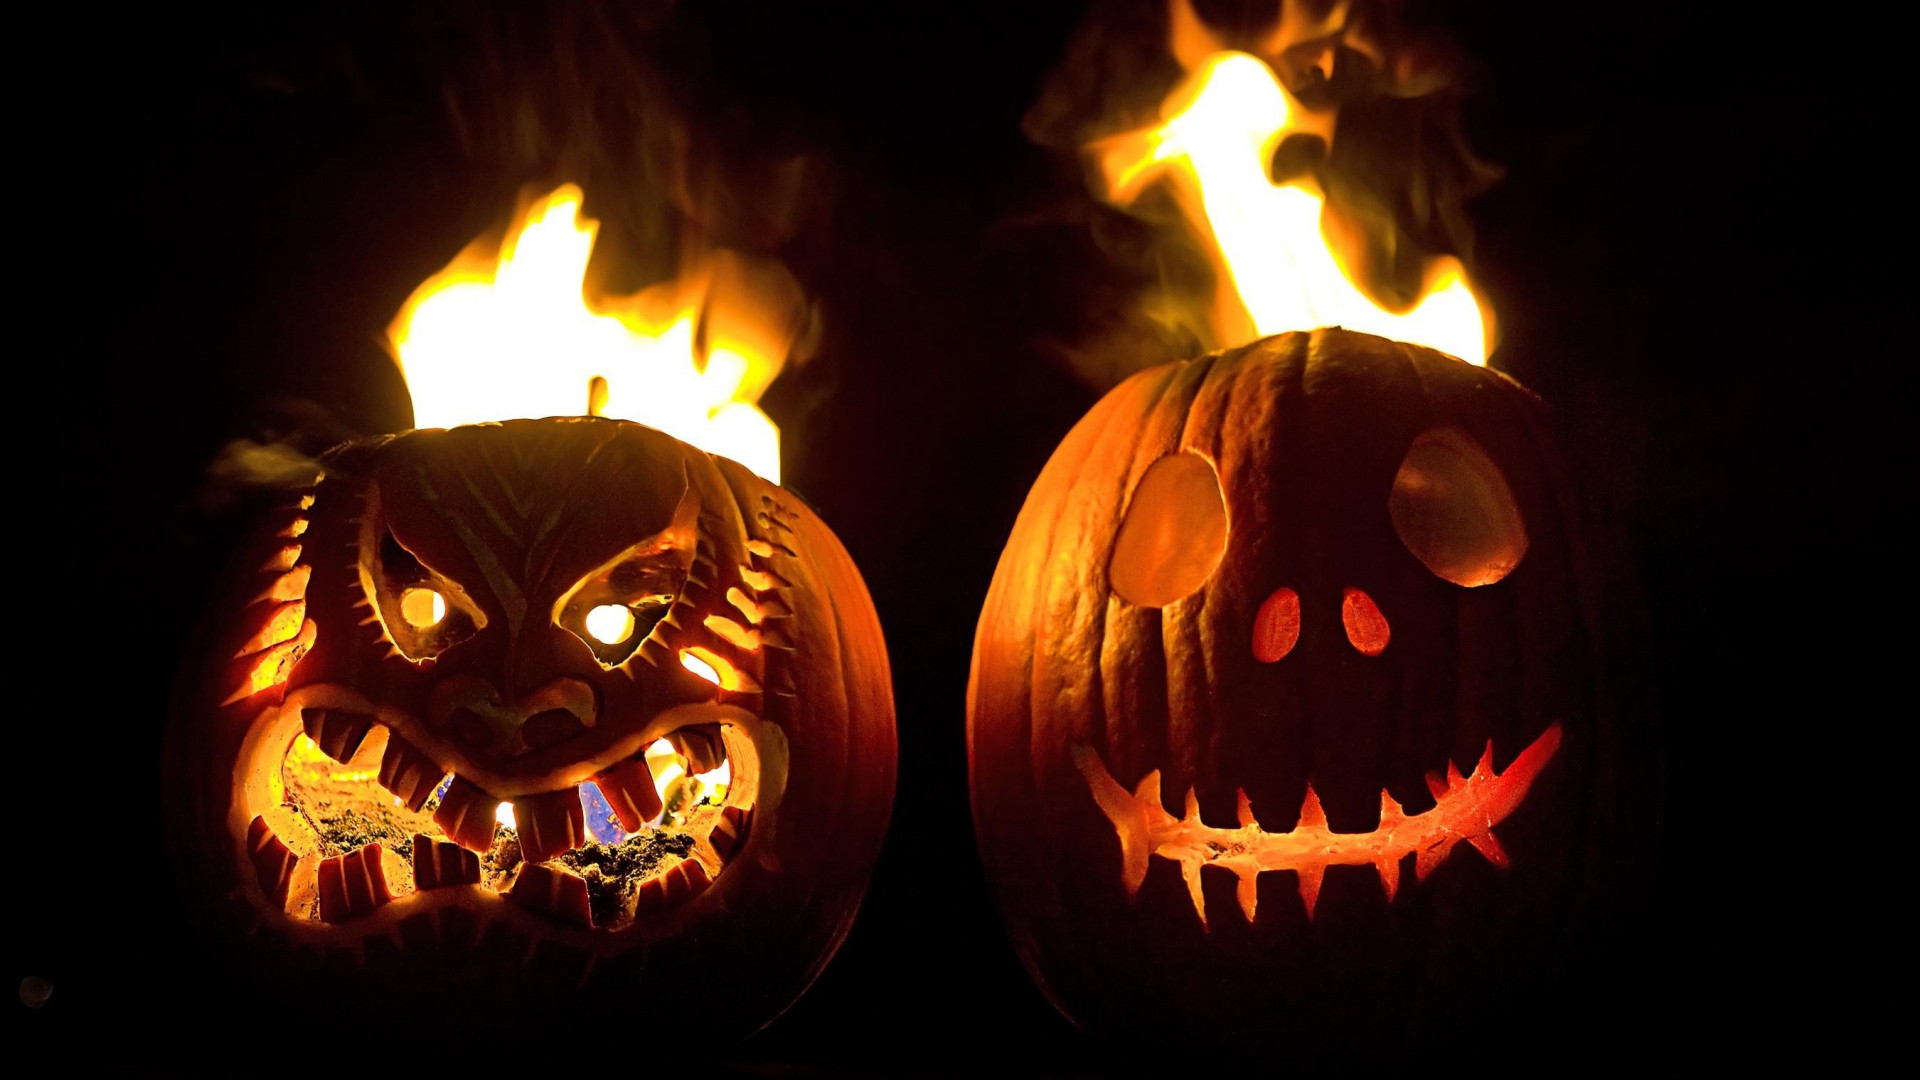 1920x1080 Preview wallpaper halloween, holiday, pumpkin, faces, steam, fire, black  background